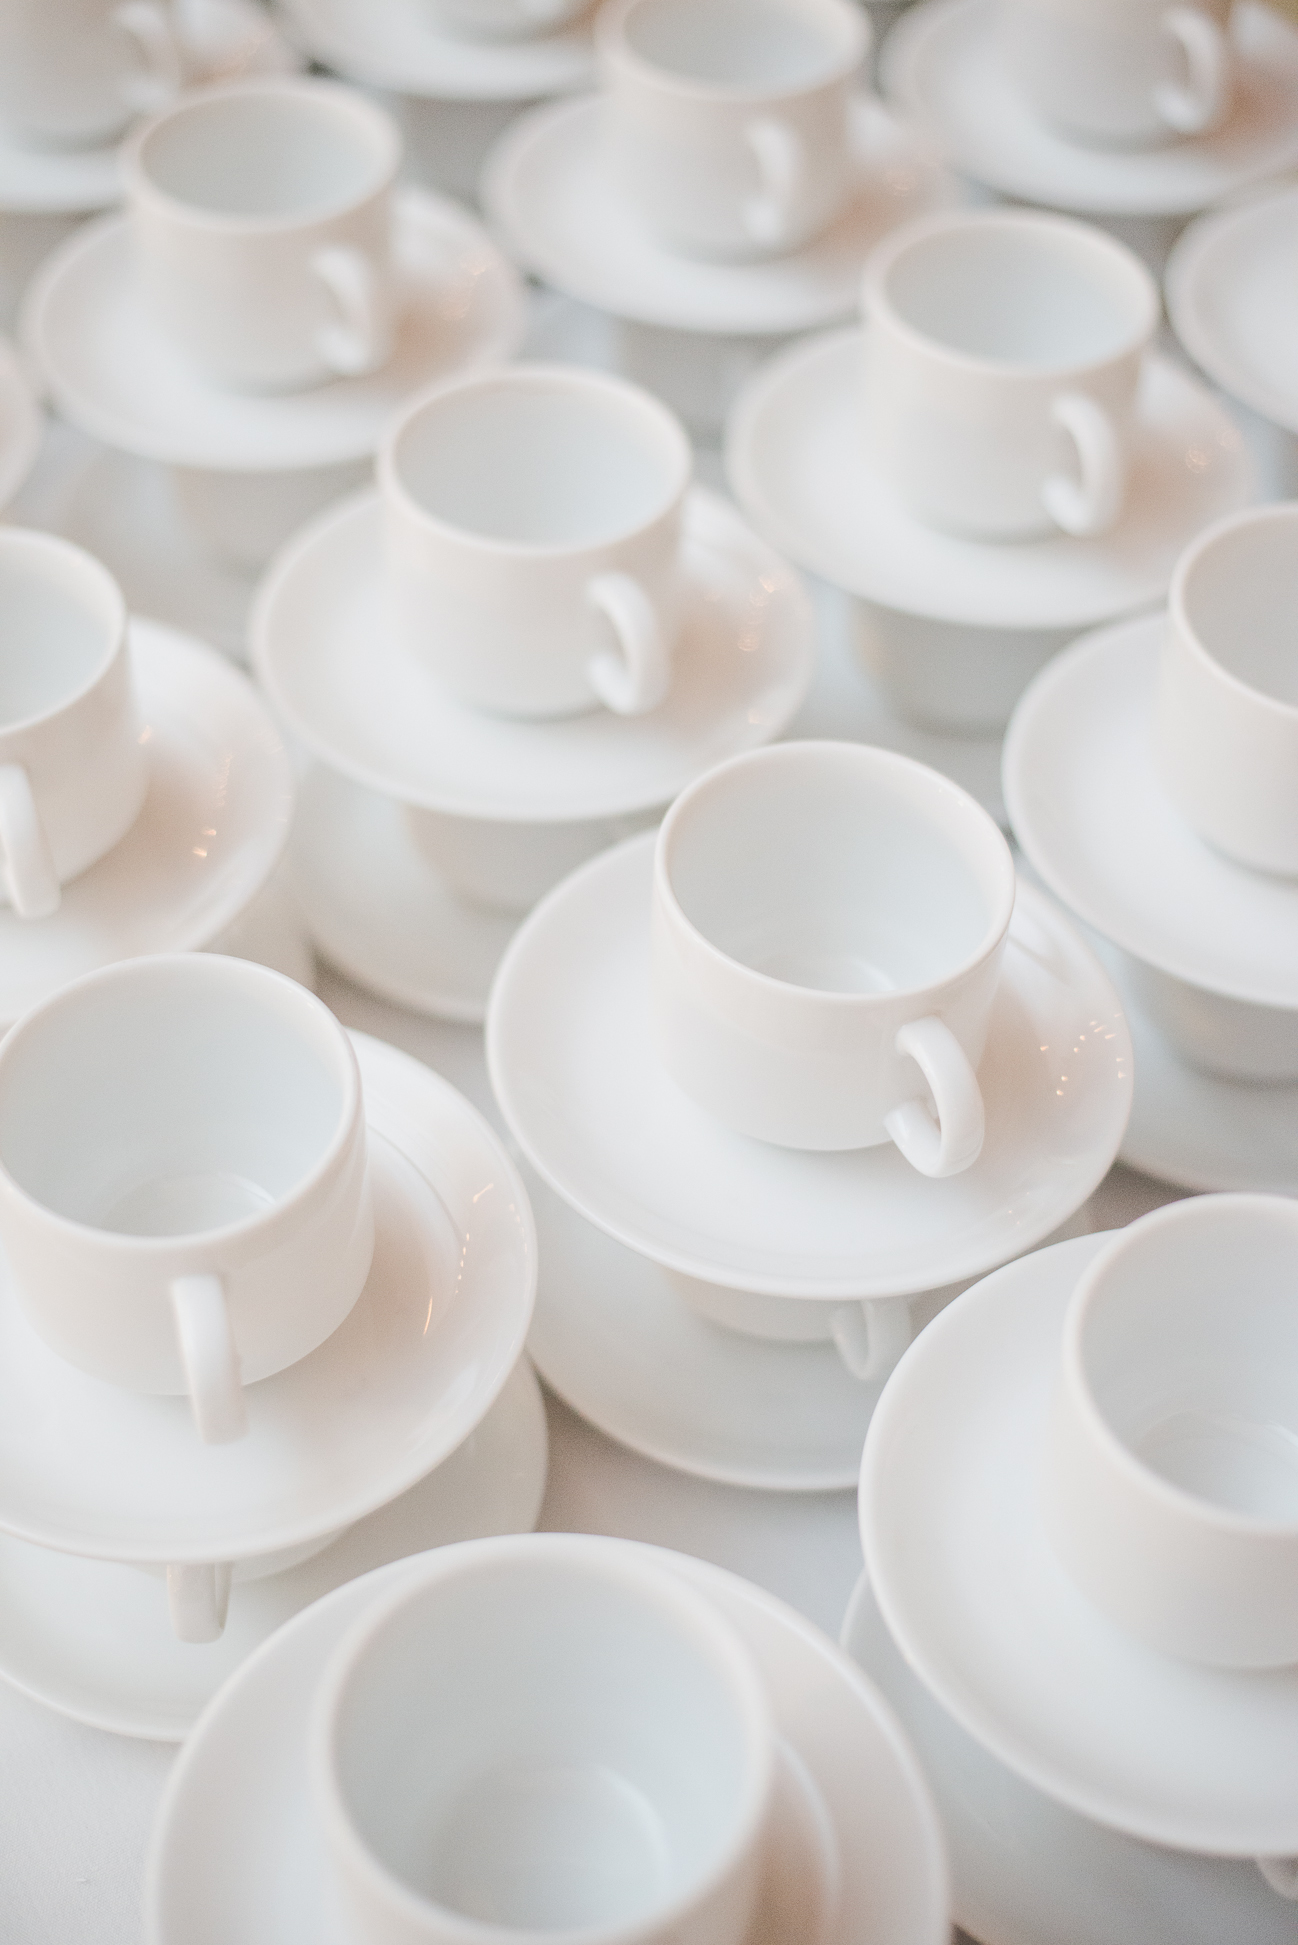 stacks of coffee mugs and saucers at wedding reception